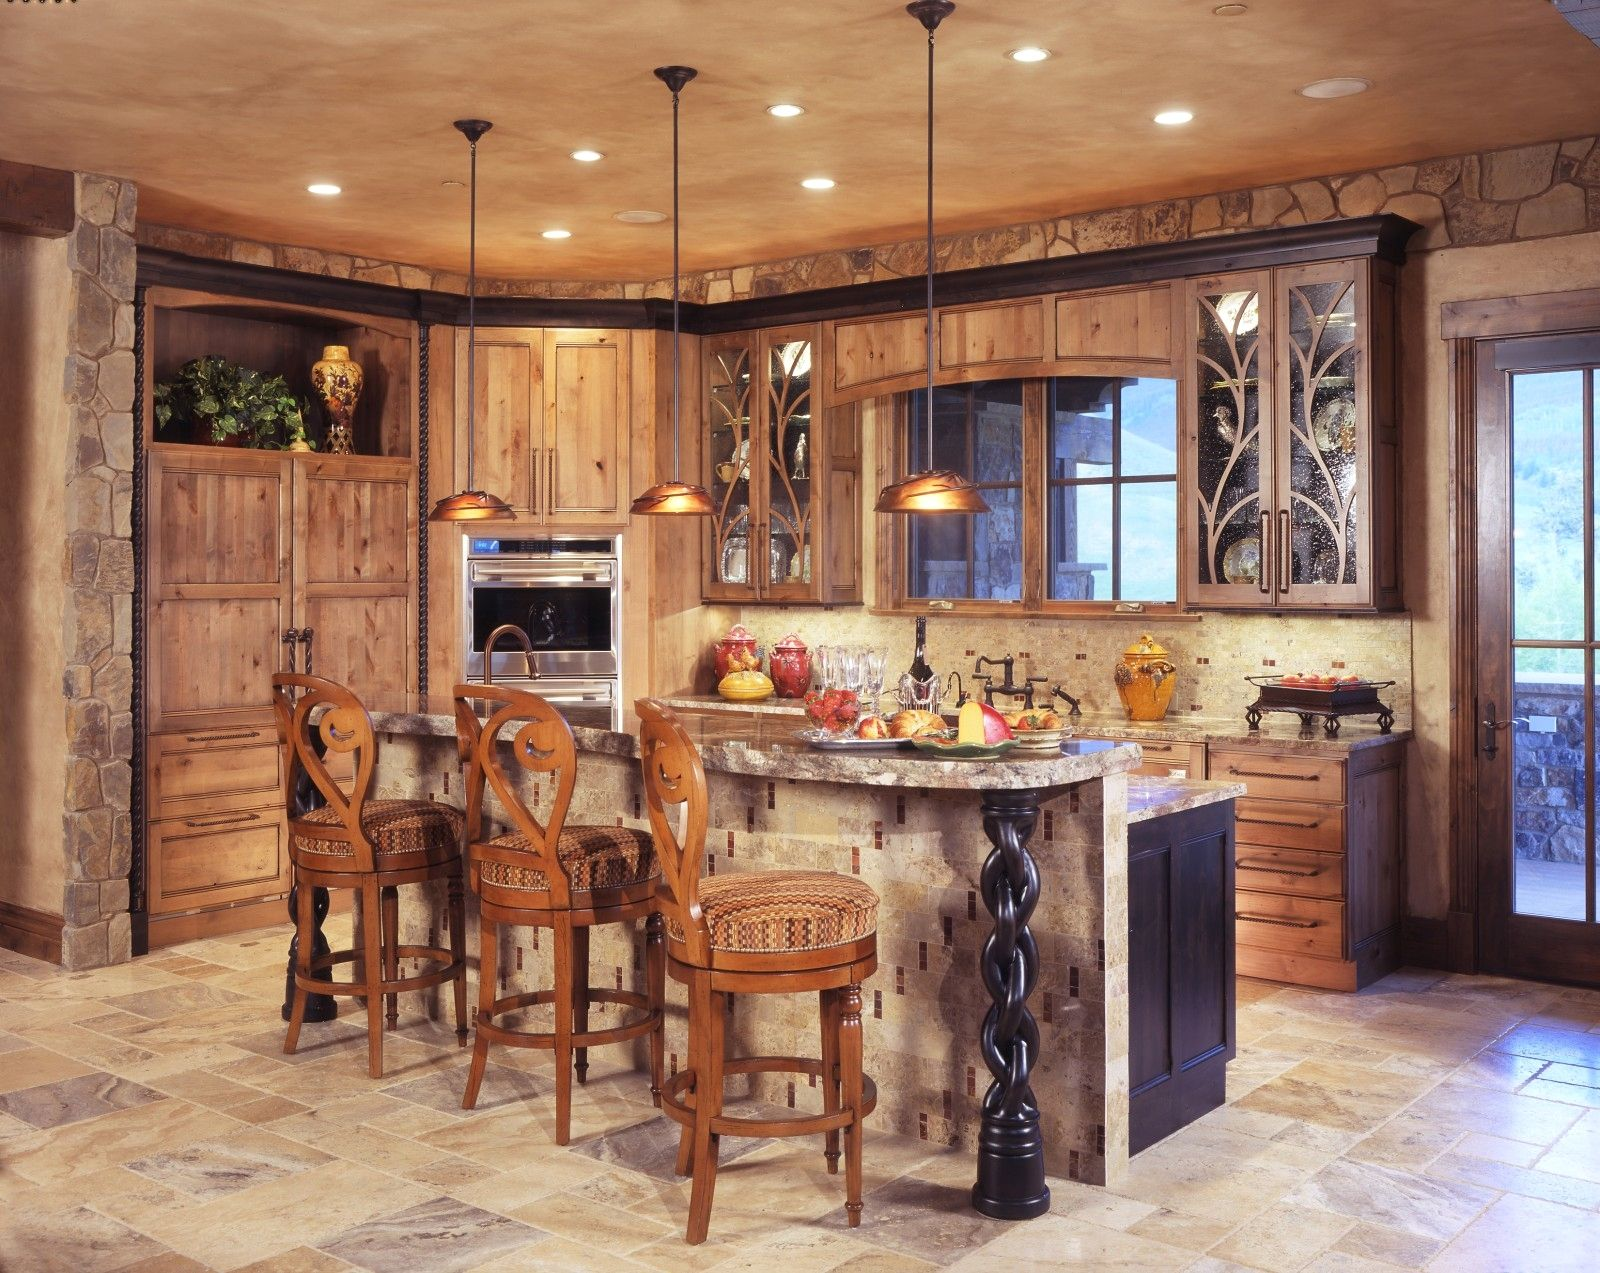 50 creative rustic light fixture plans to update the kitchen in your apartment rustic kitchen lighting design rustic lighting rustic kitchen